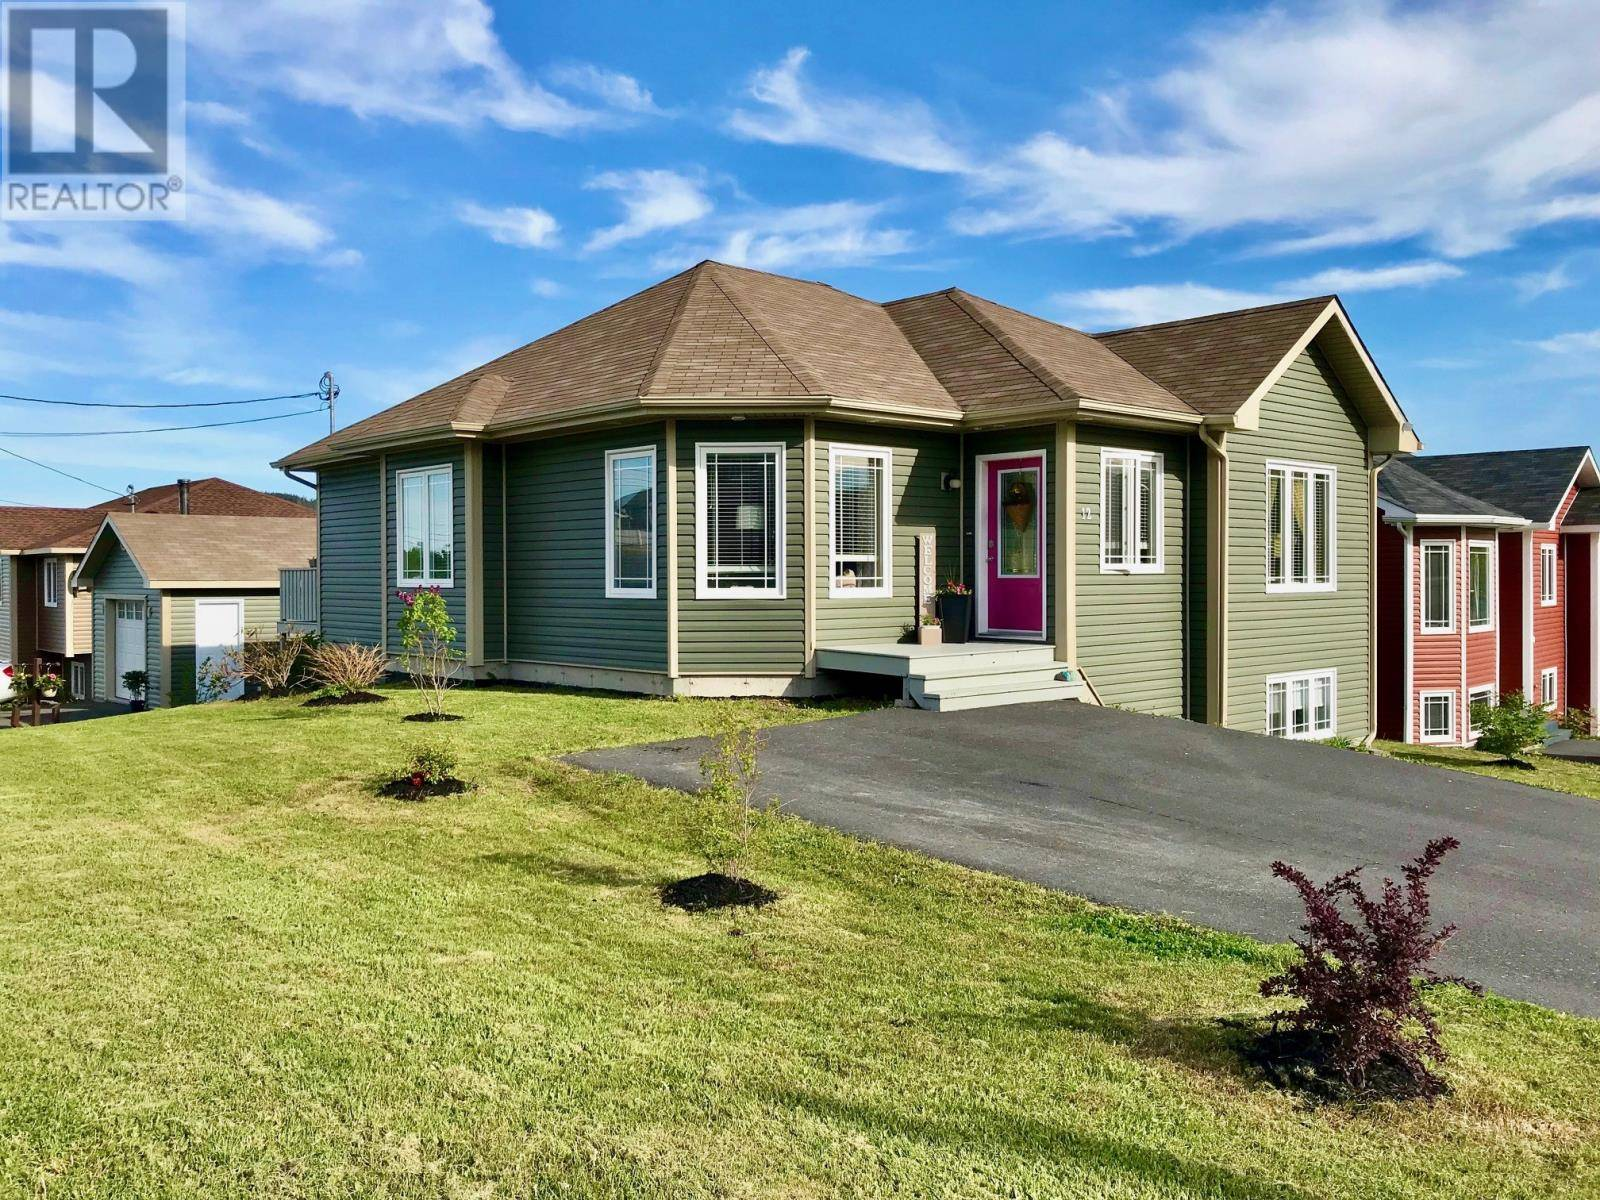 House for sale at 12 Clyde Ave Clarenville Newfoundland - MLS: 1212577